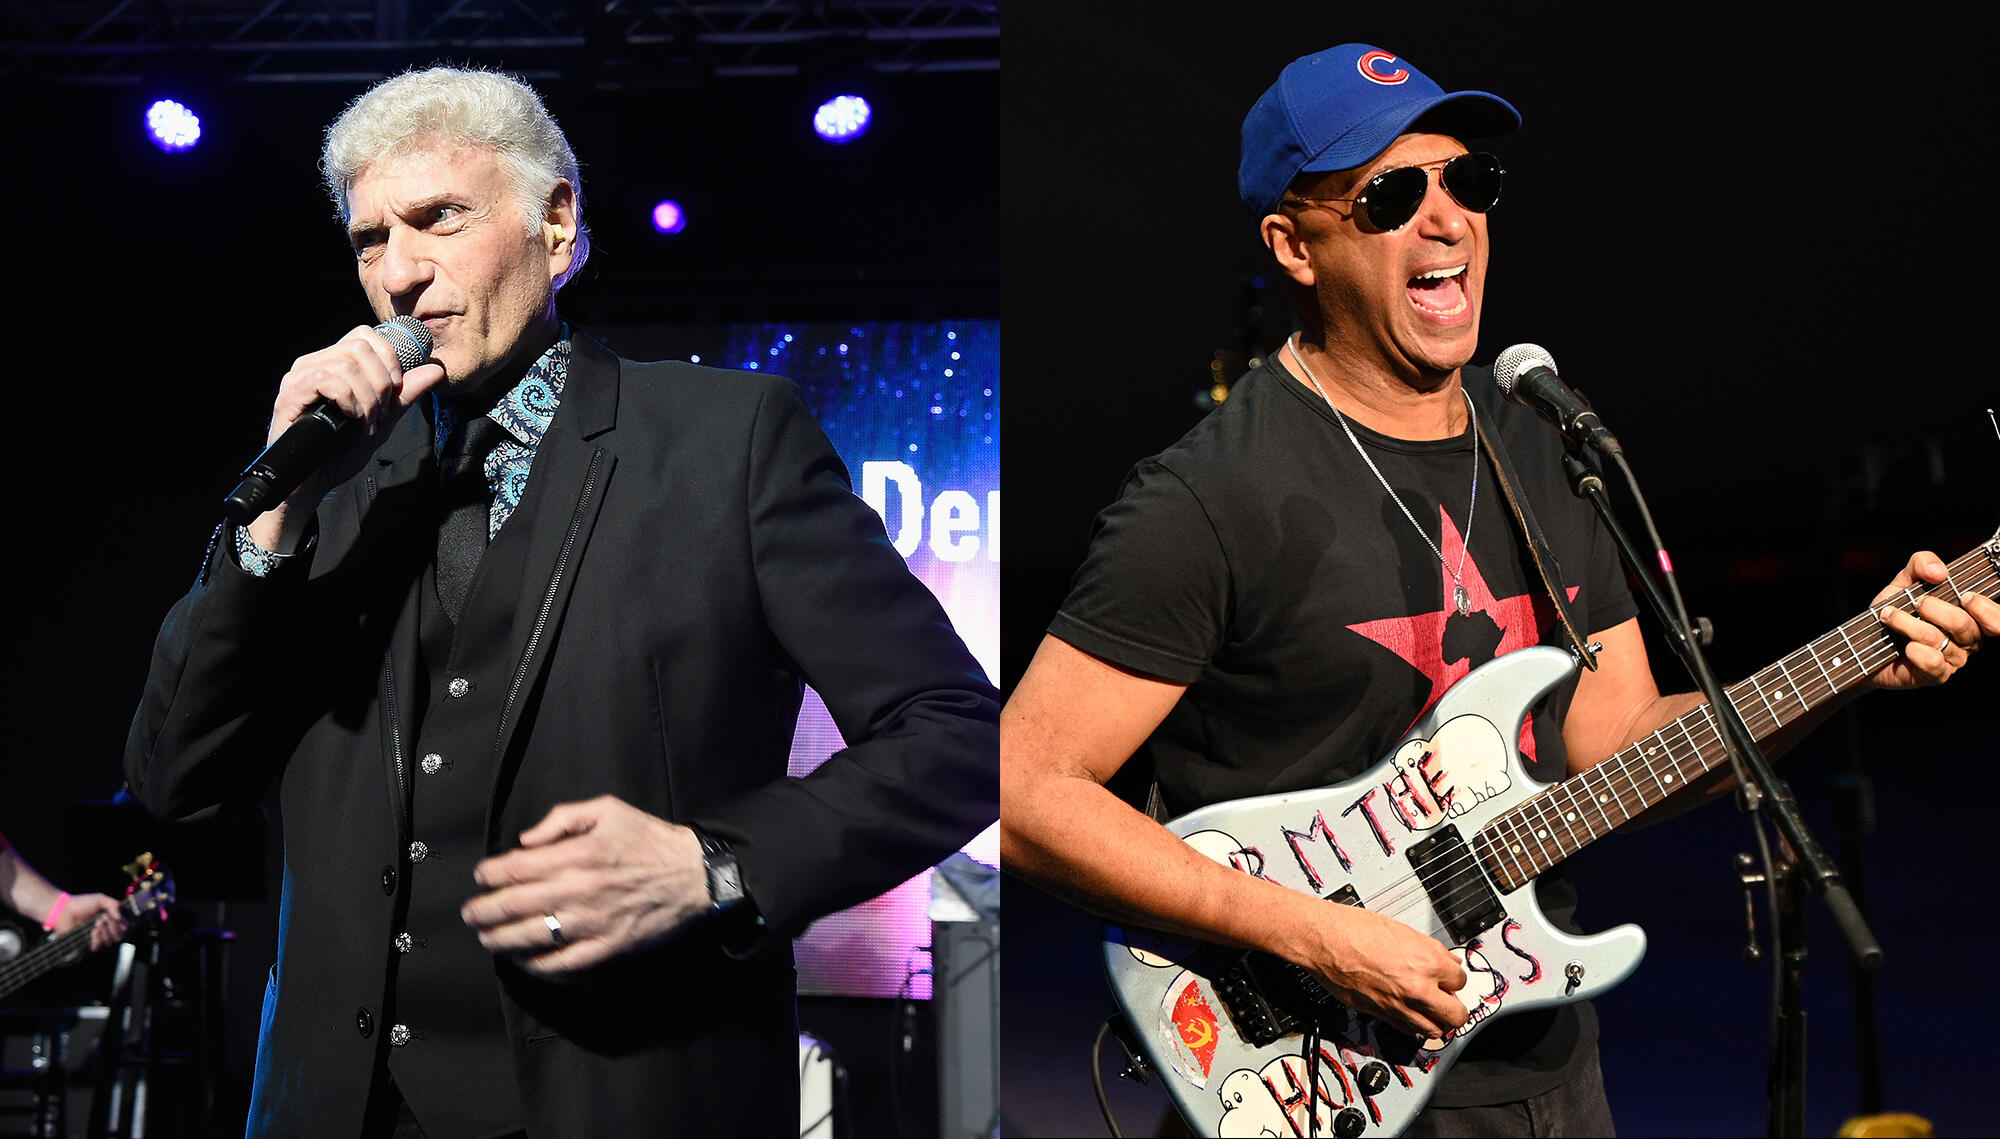 Tom Morello Teams Up With Styx's Dennis DeYoung On 'The Last Guitar Hero'